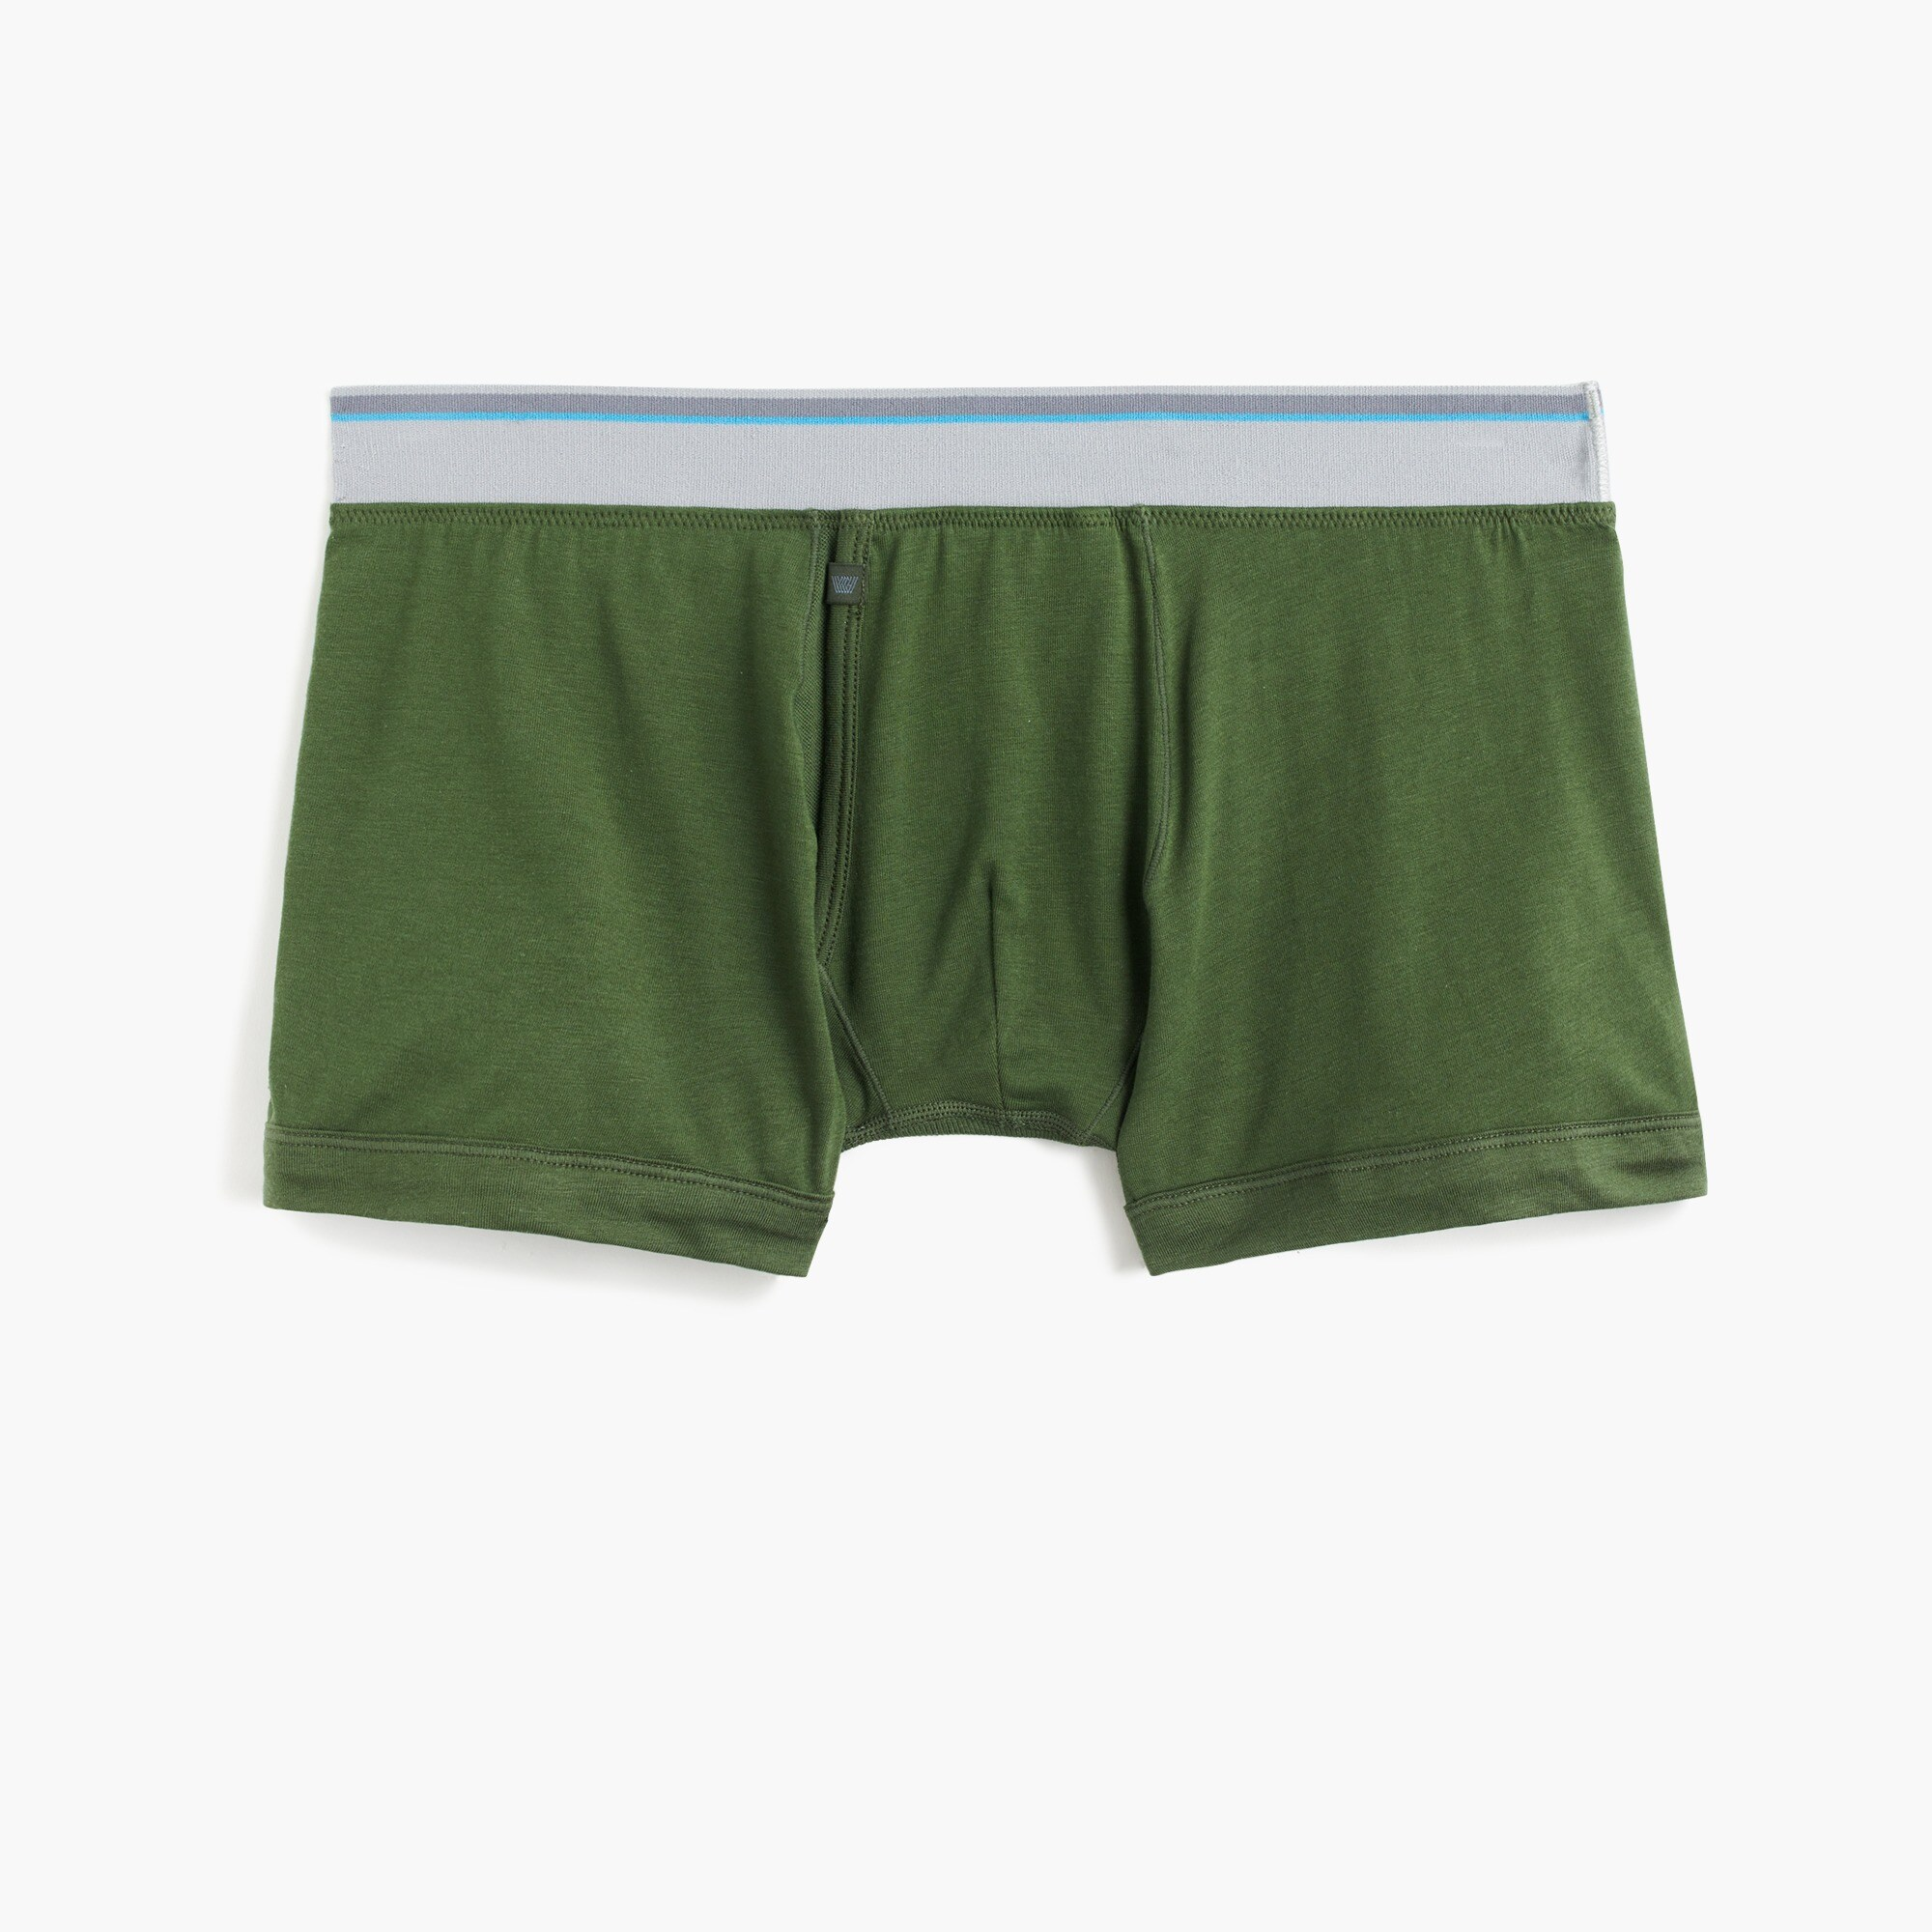 Mack Weldon® 18-hour trunks men j.crew in good company c